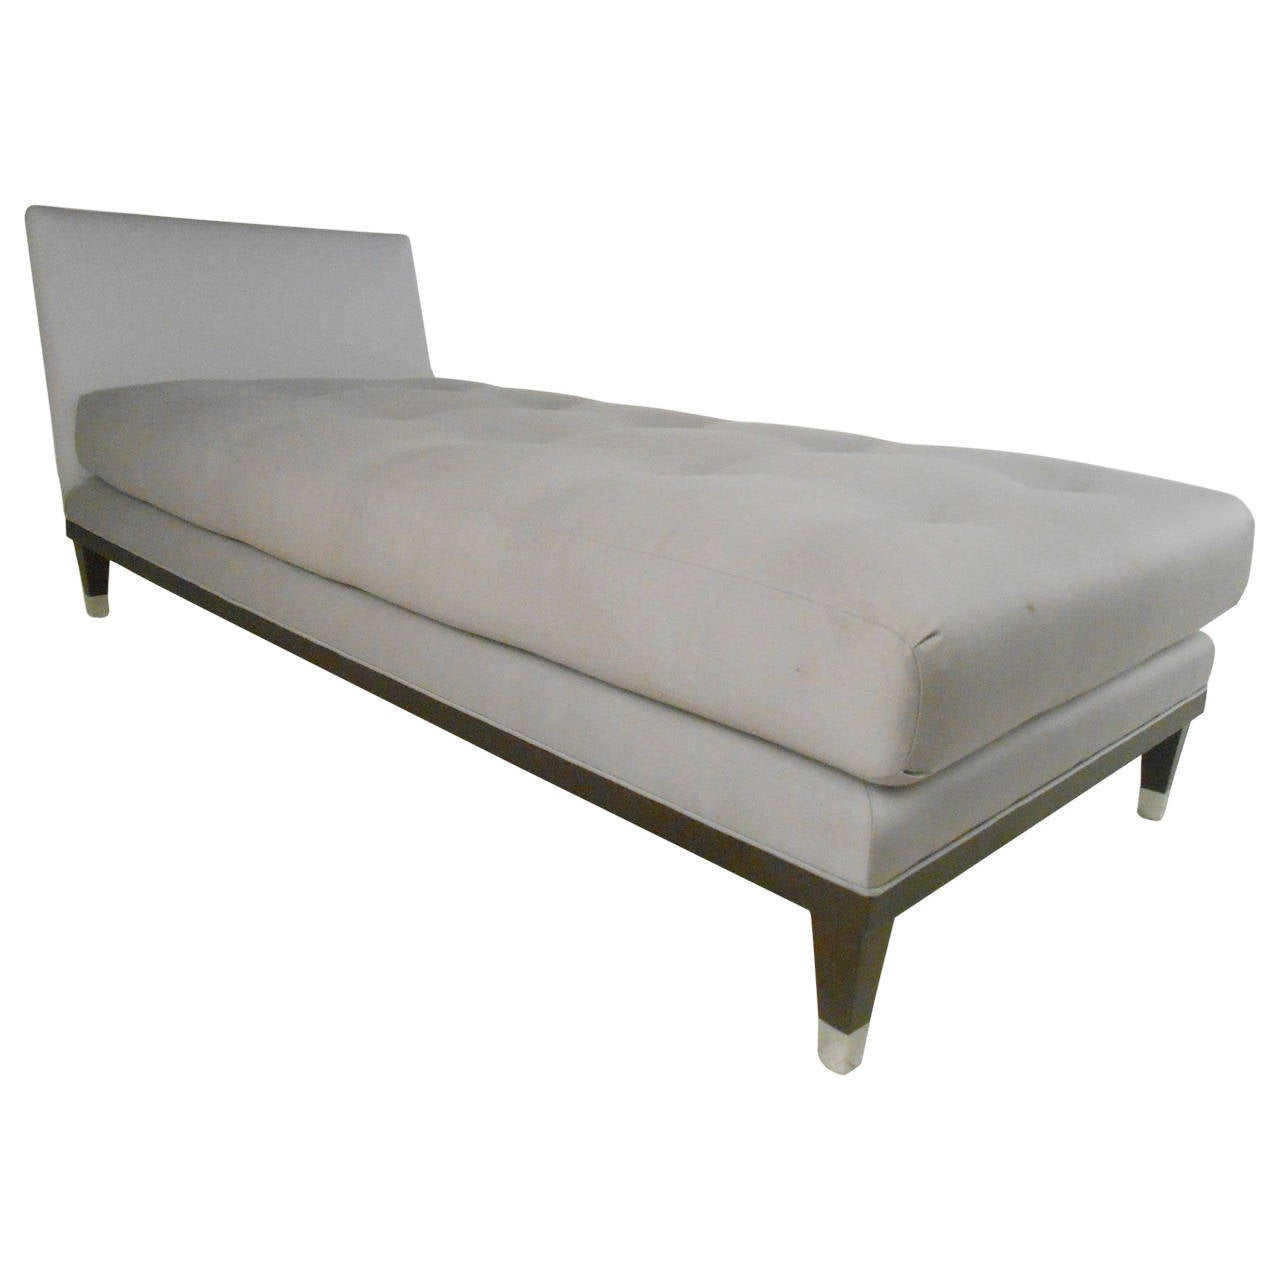 Contemporary chaise lounge contemporary barcelona style for Chaise longue or chaise lounge